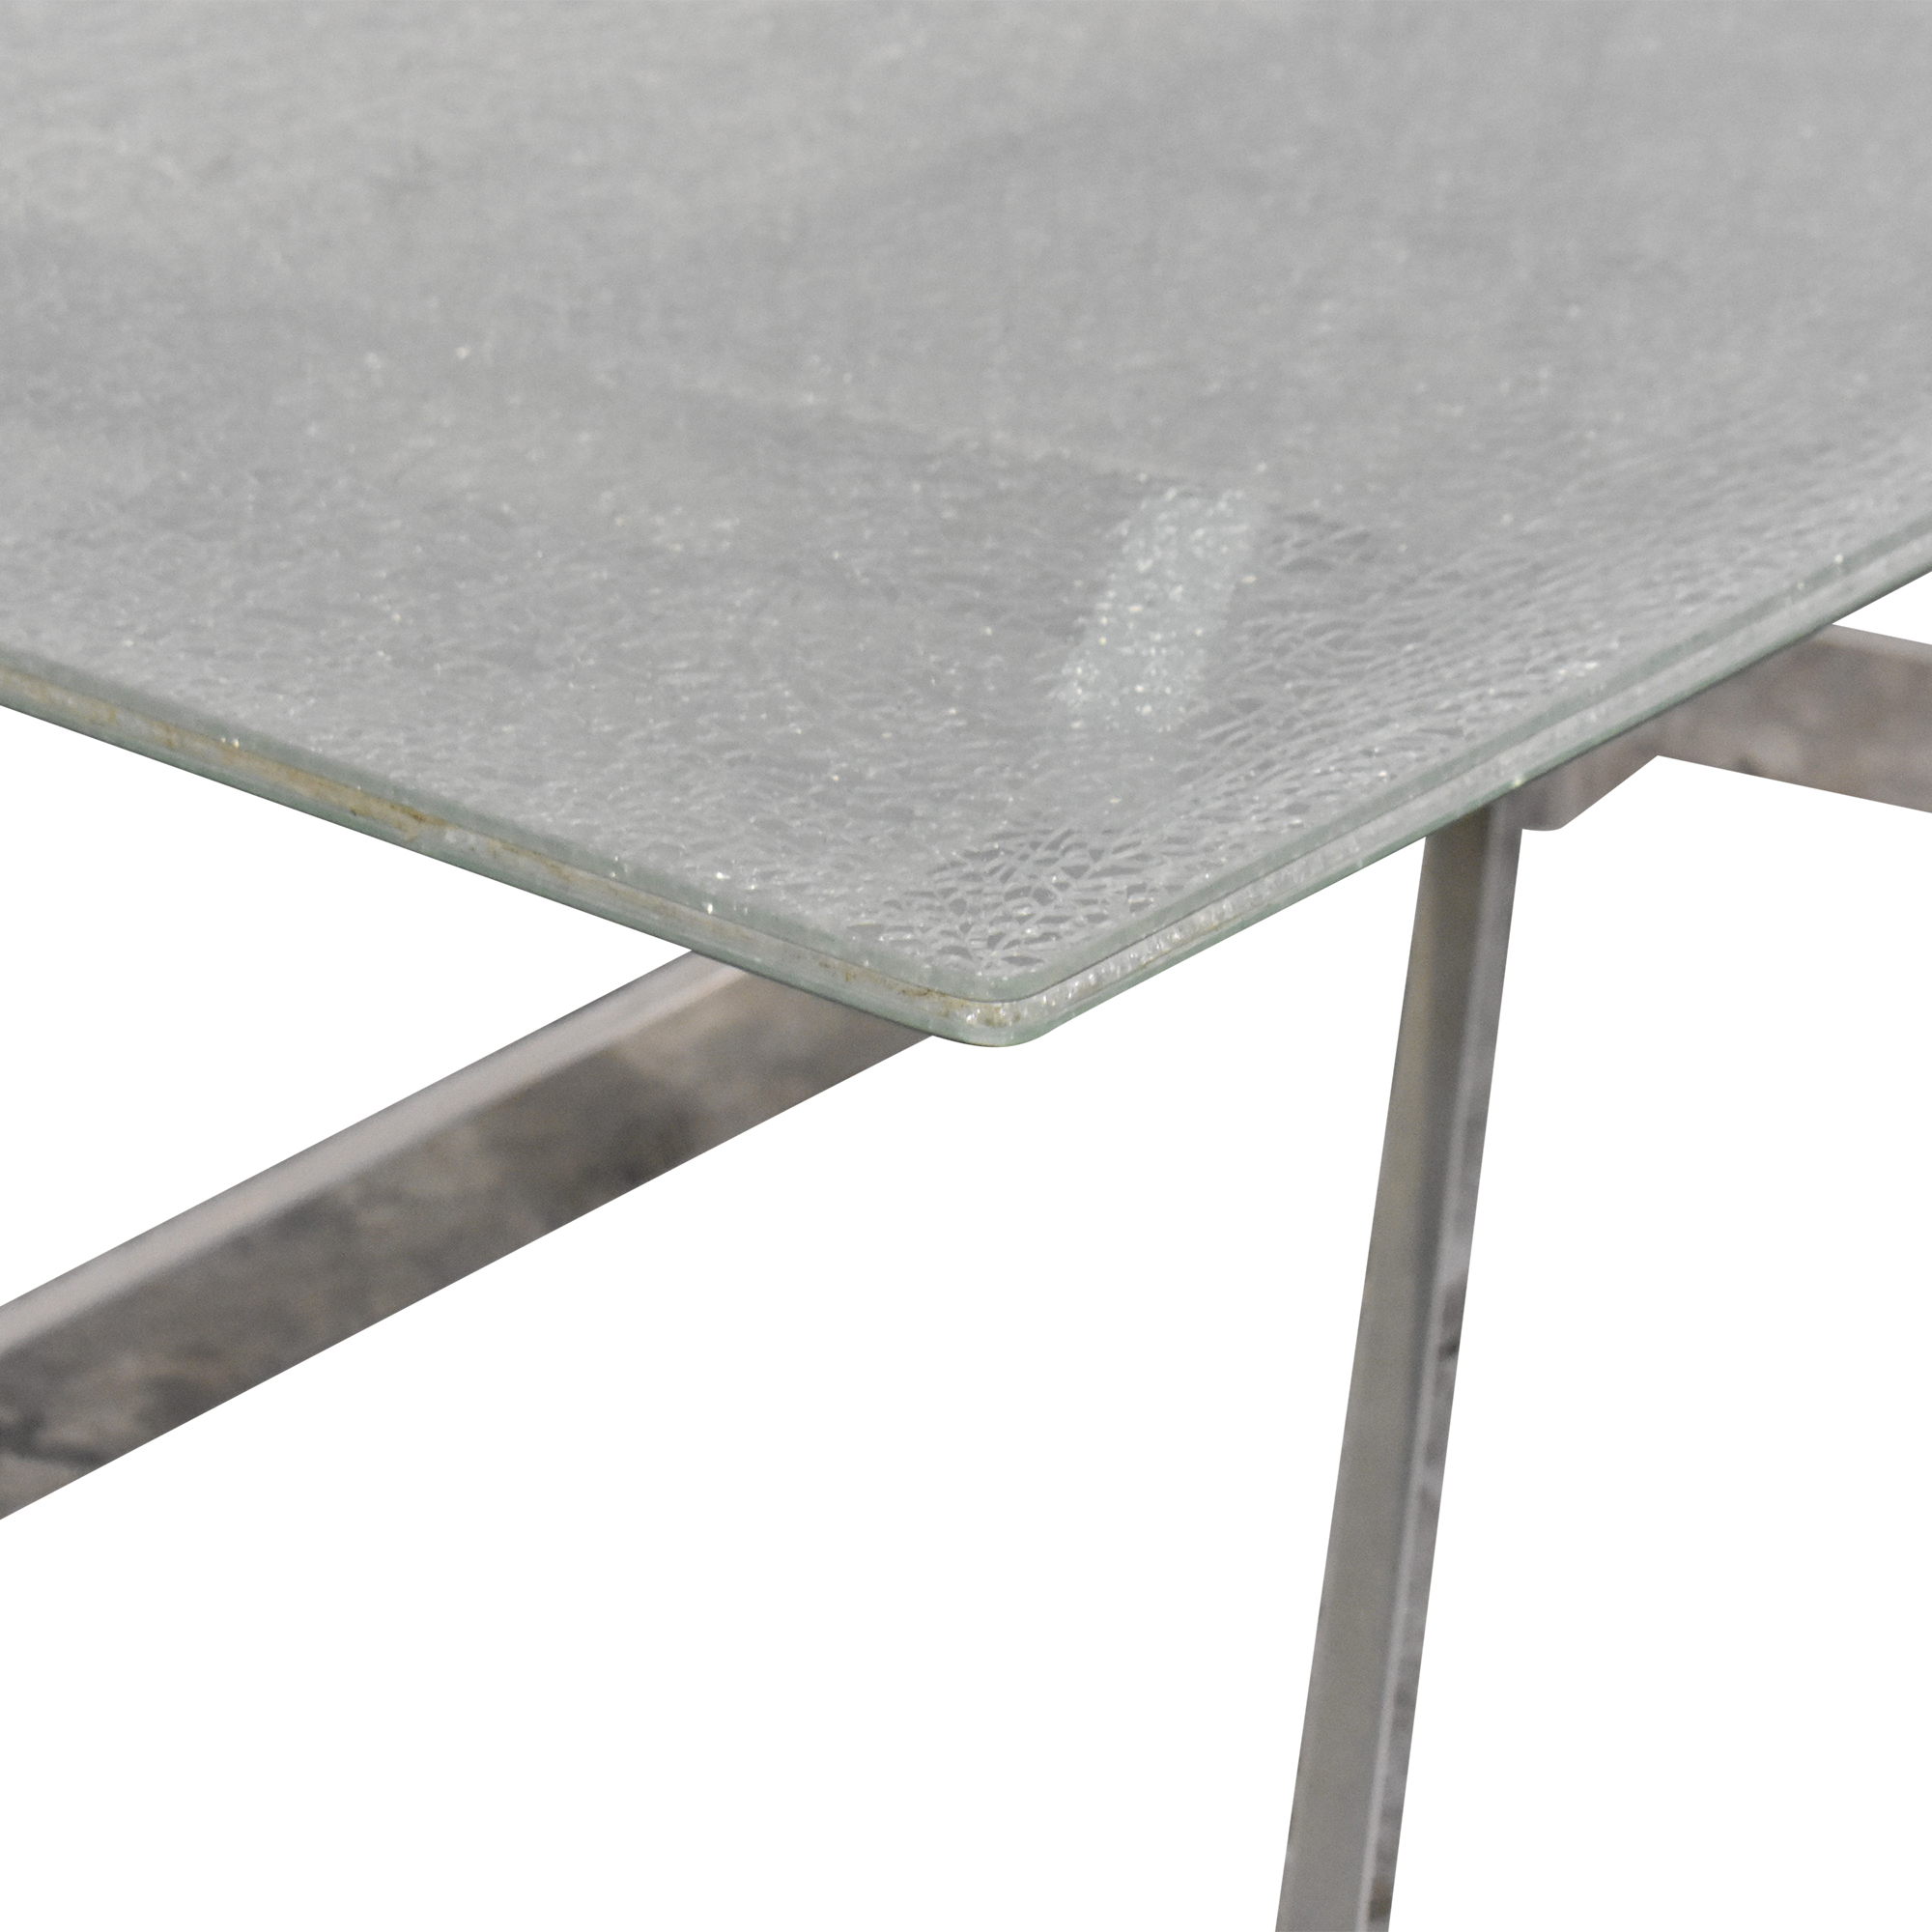 Raymour & Flanigan Raymour & Flanigan Contemporary Cocktail Table dimensions